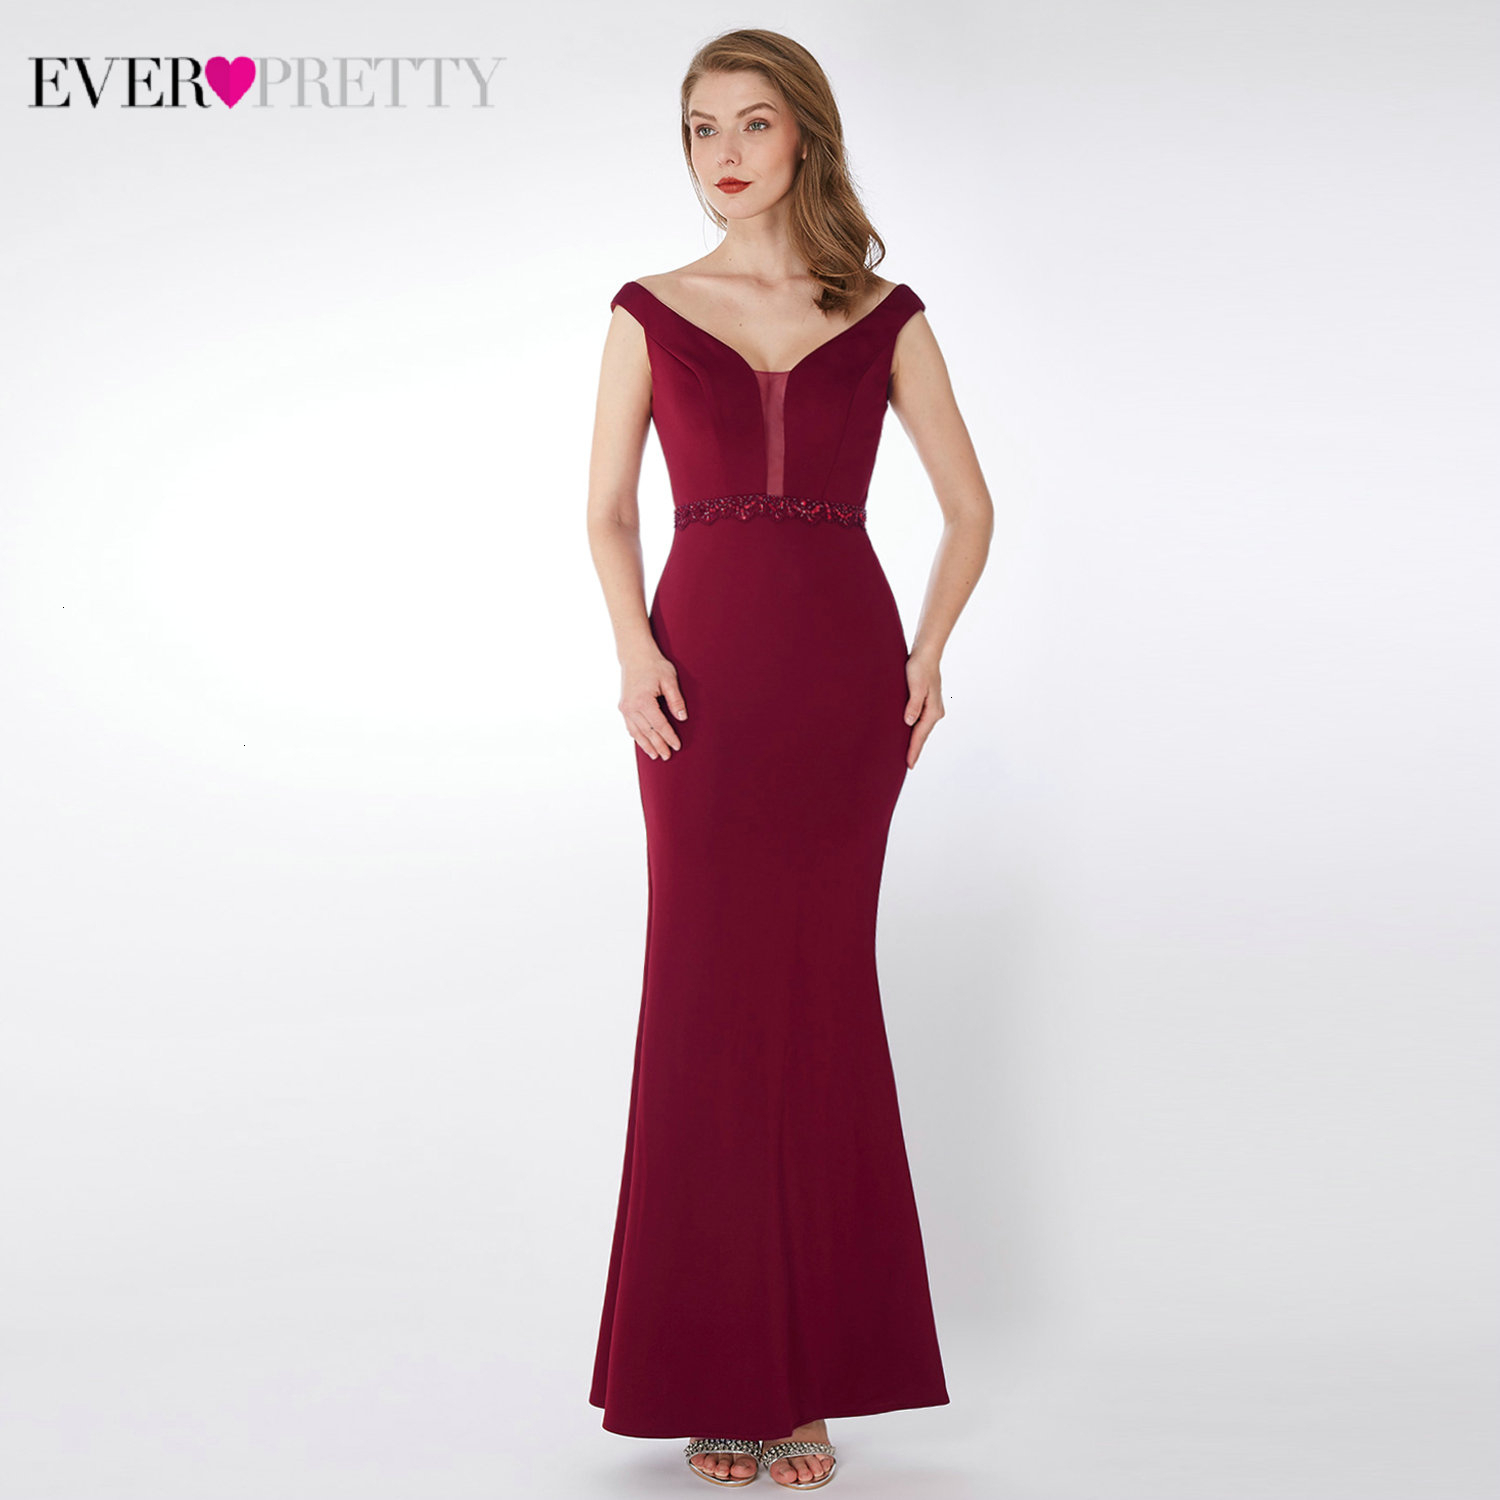 Burgundy Mermaid Prom Dresses Ever Pretty Double V-Neck Beaded Sleeveless Elegant Evening Party Gowns Vestido Formatura 2019